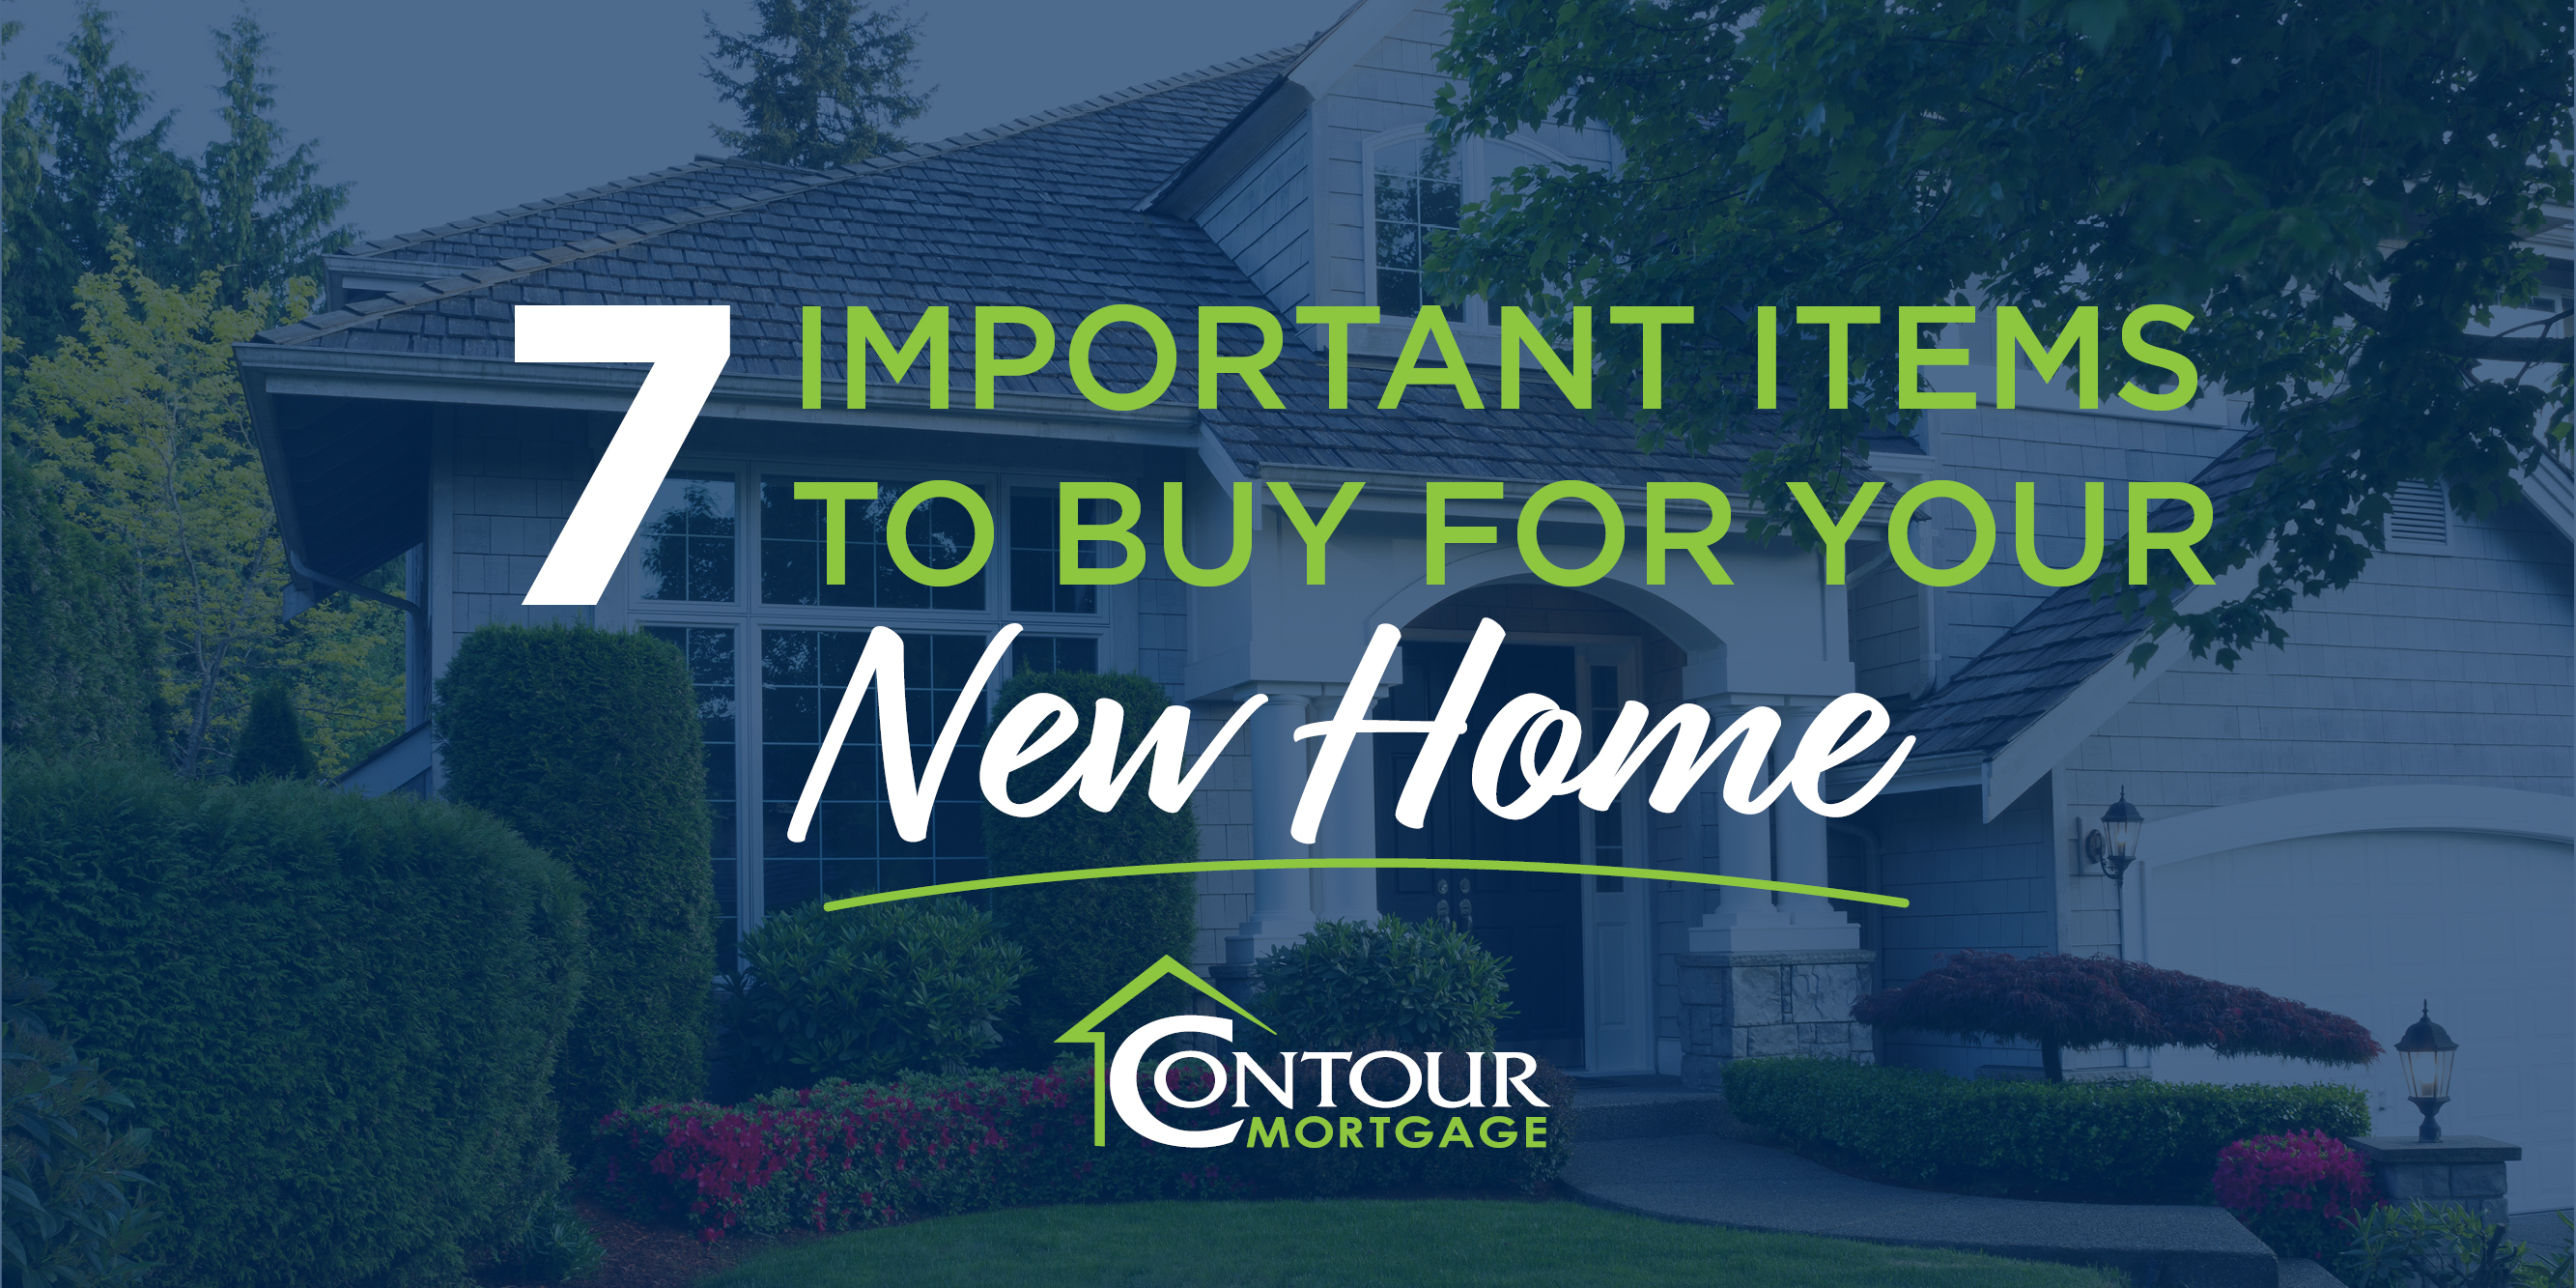 Blog Post - 7 Imporant items to buy for your new home